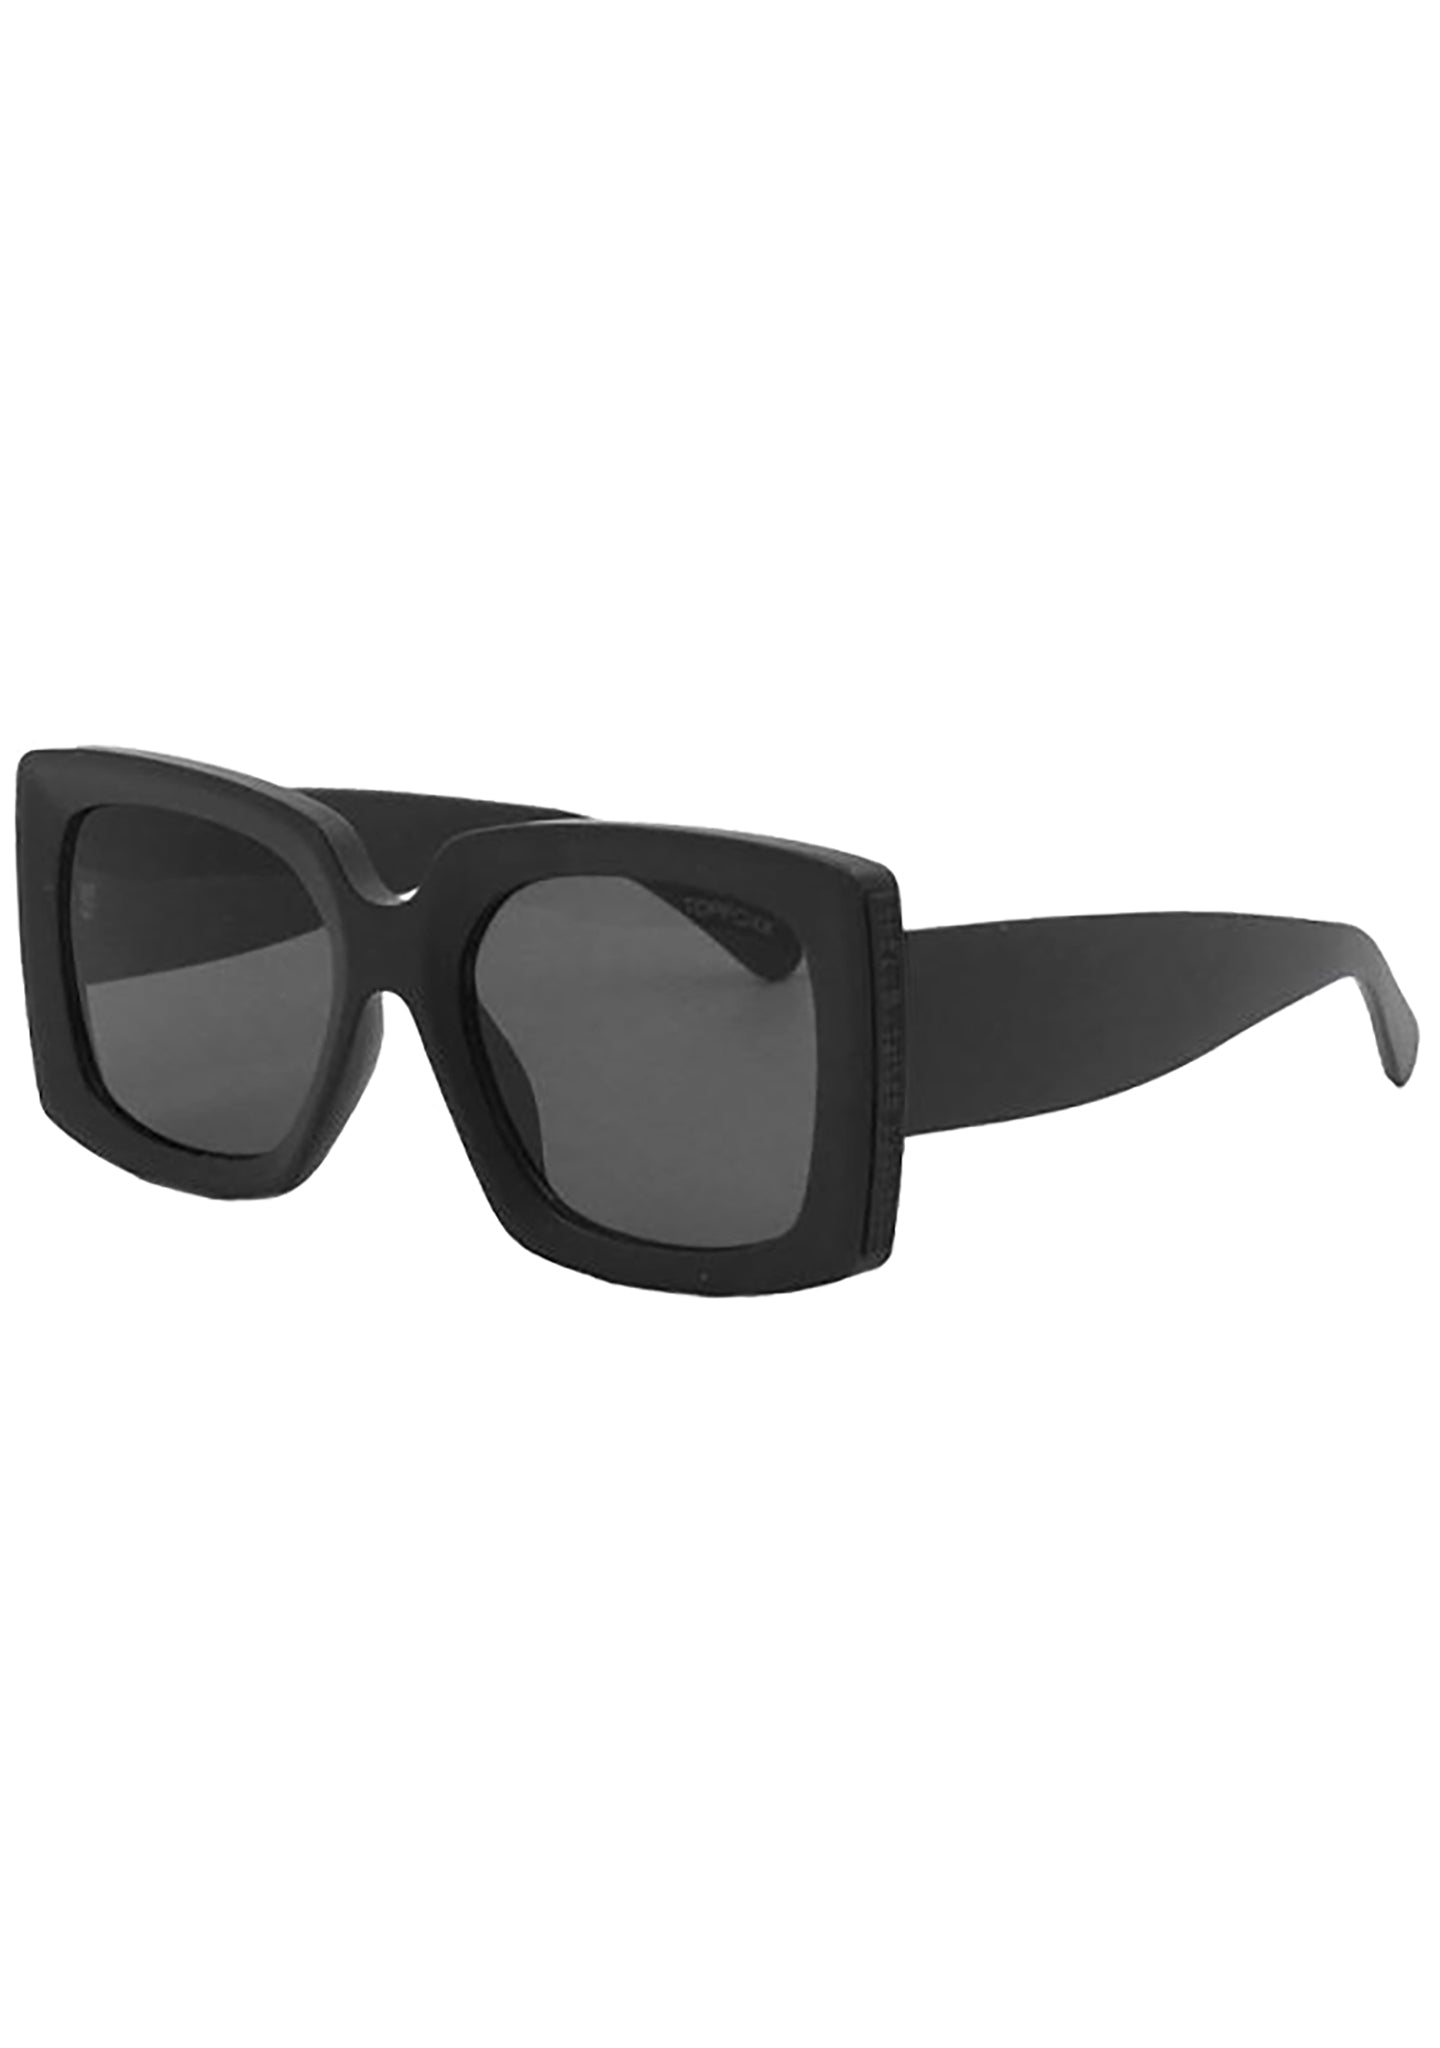 Bardot Sunglasses in Black